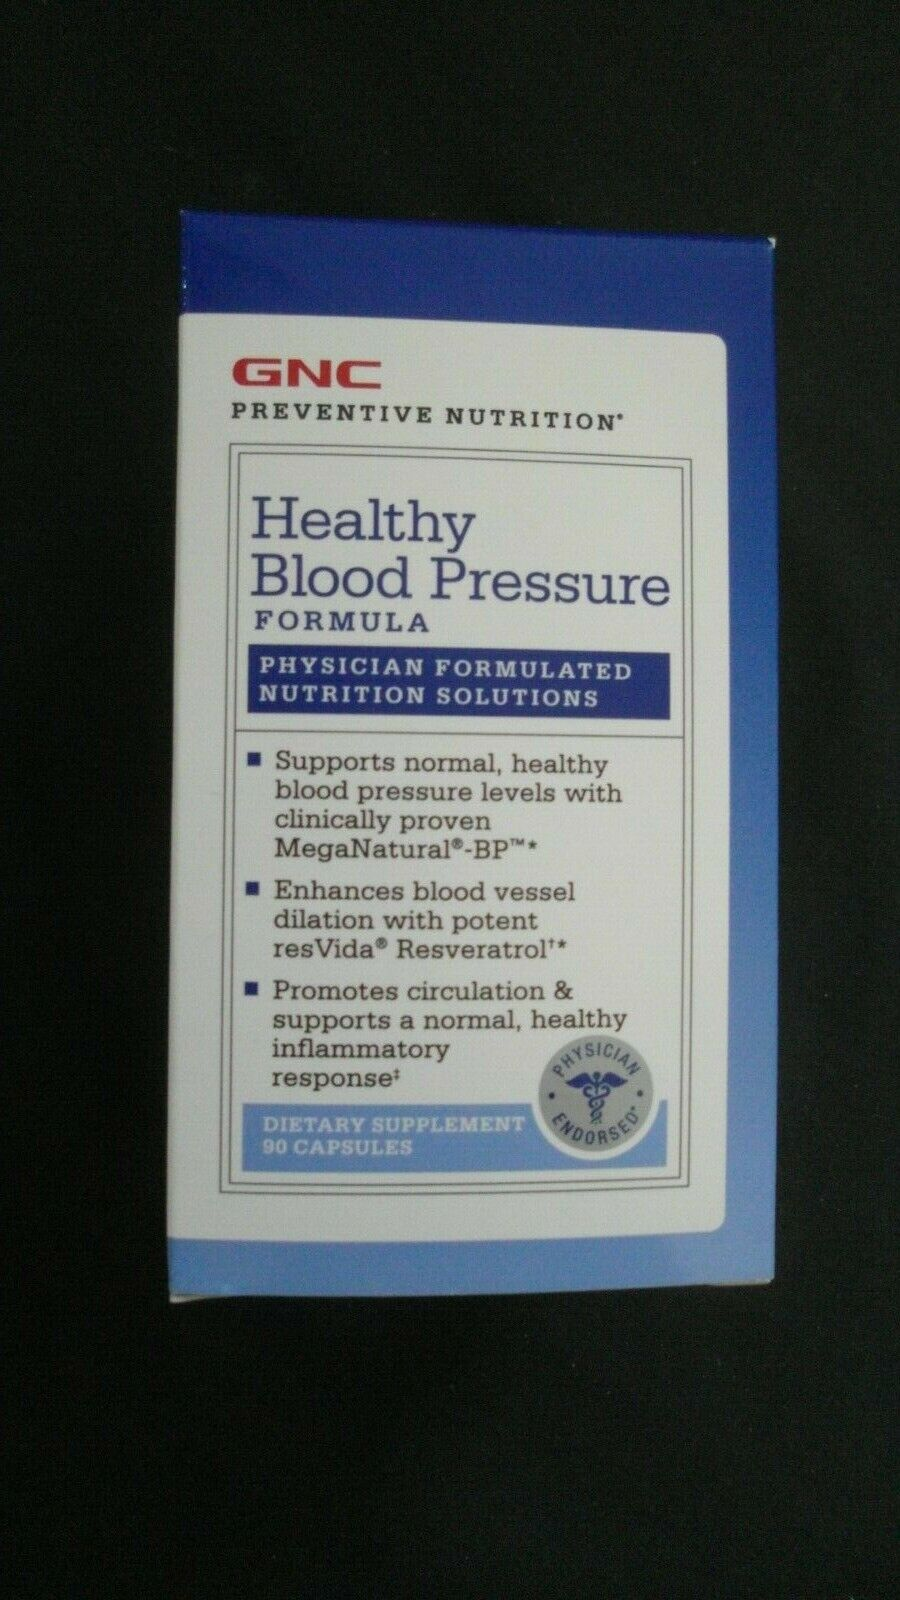 Gnc Preventive Nutrition Healthy Blood Pressure 90 Capsules For